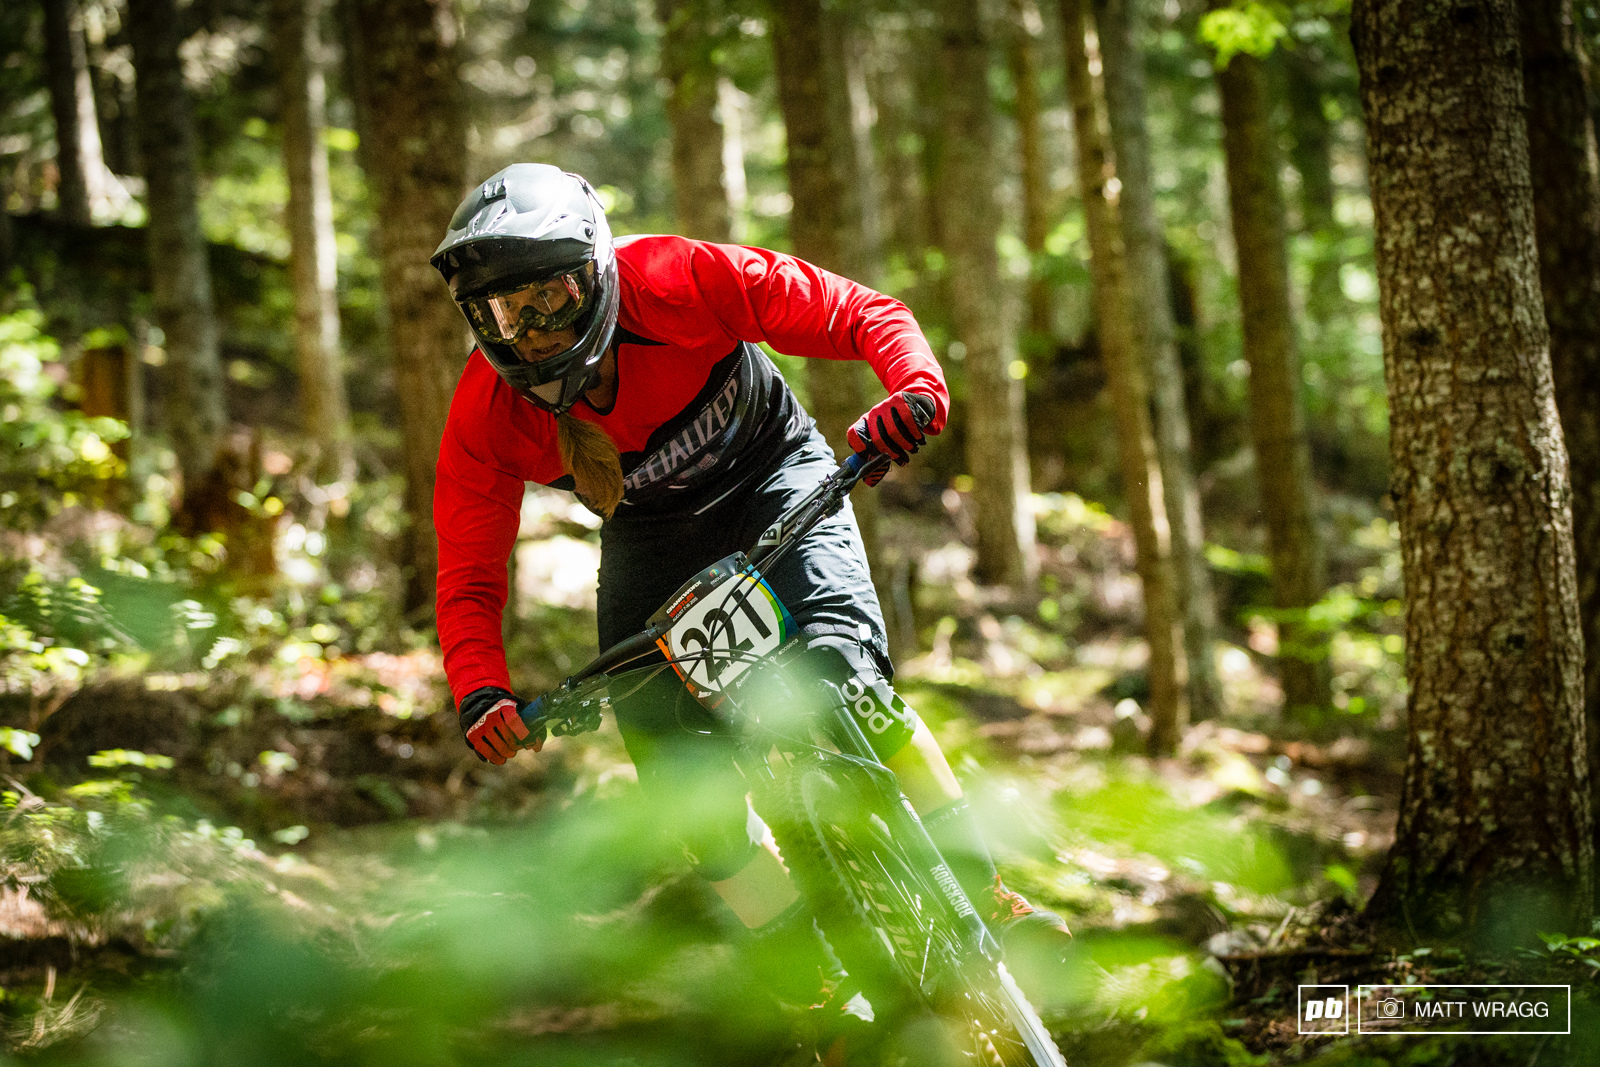 Miranda Miller got fifth in Mont Saint Anne at the World Cup DH last weekend this weekend she nailed sixth in the EWS here in Whistler.